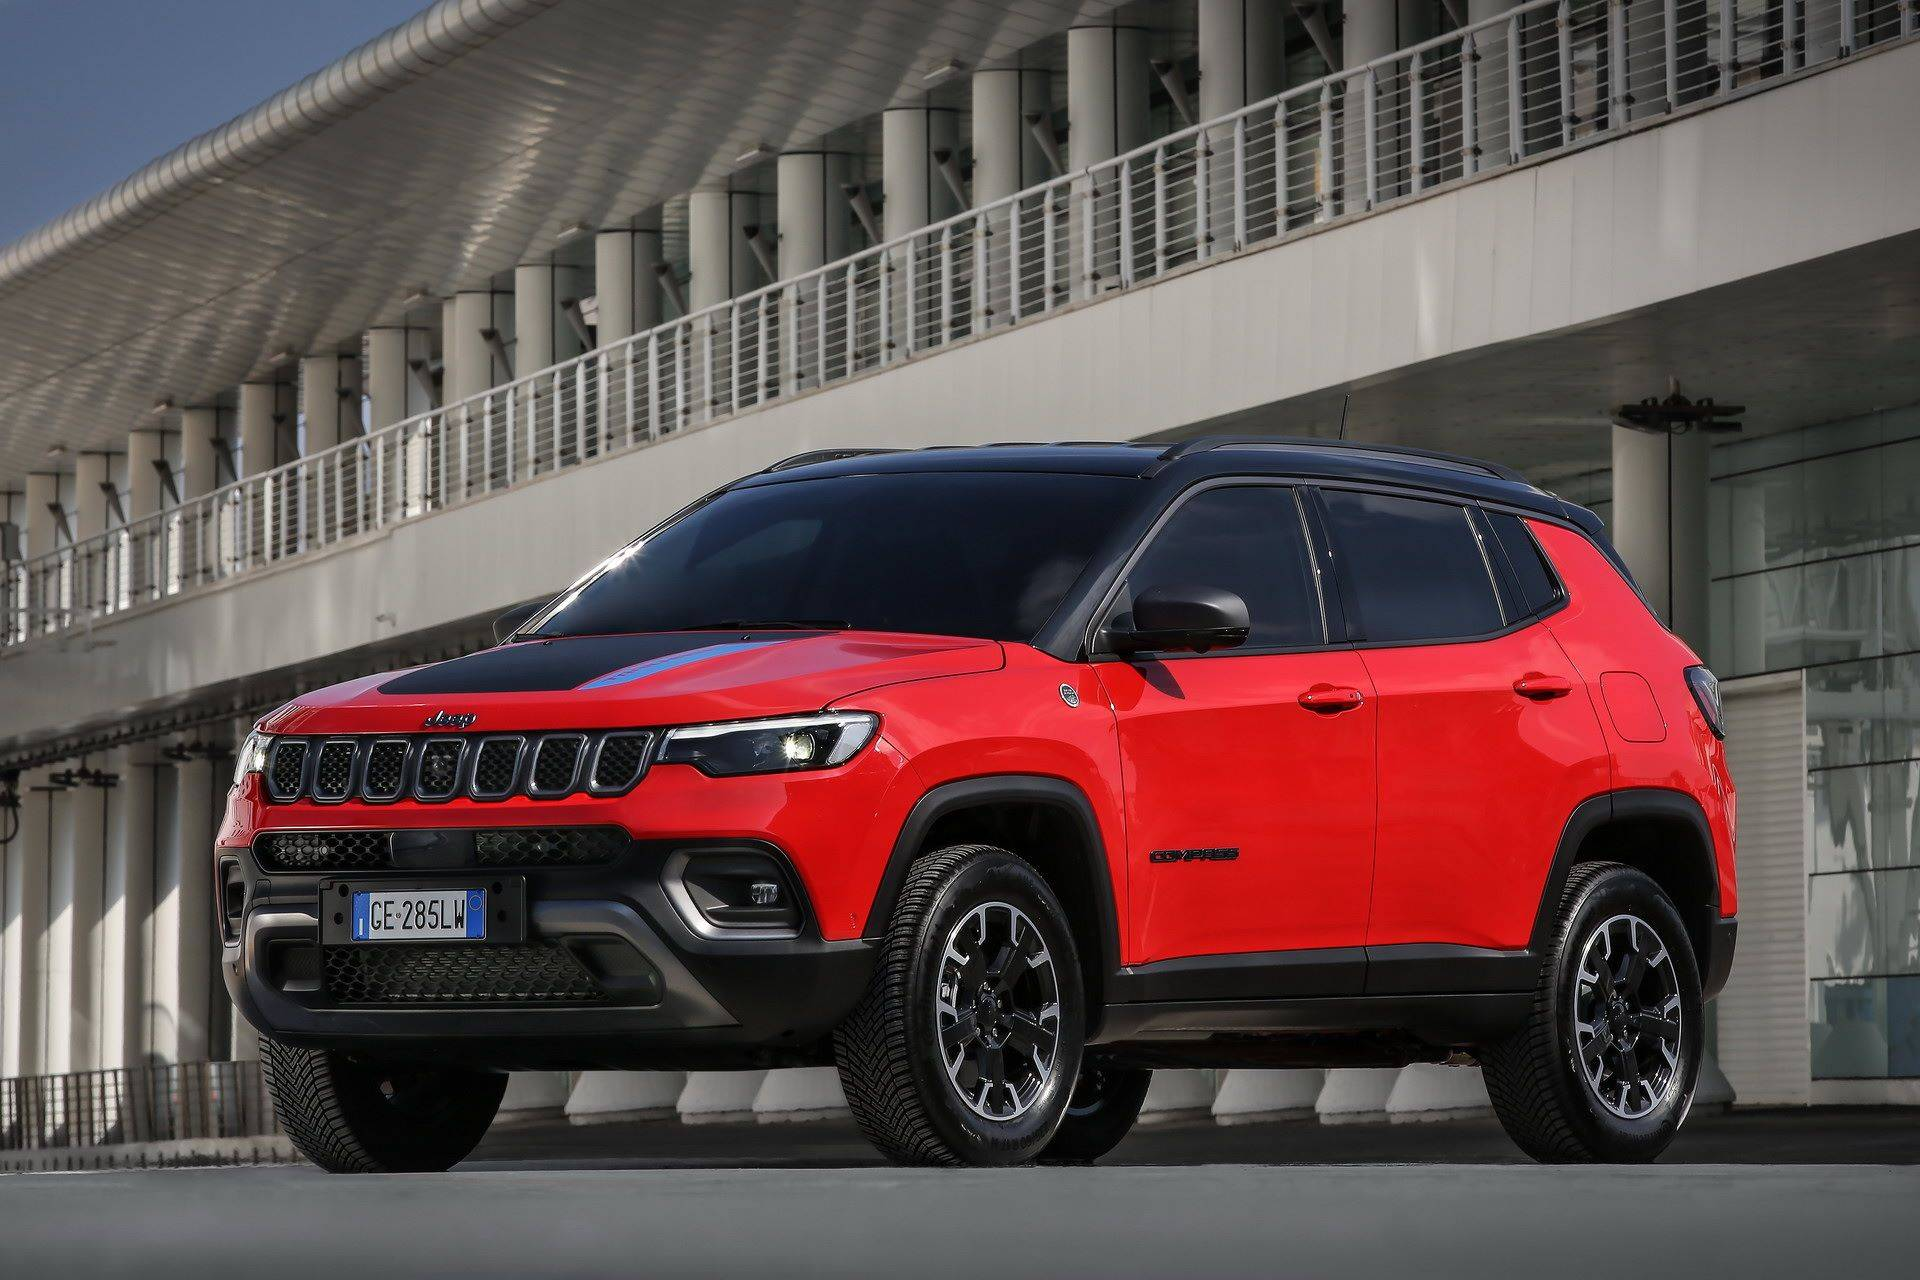 Jeep-Compass-facelift-2021-7